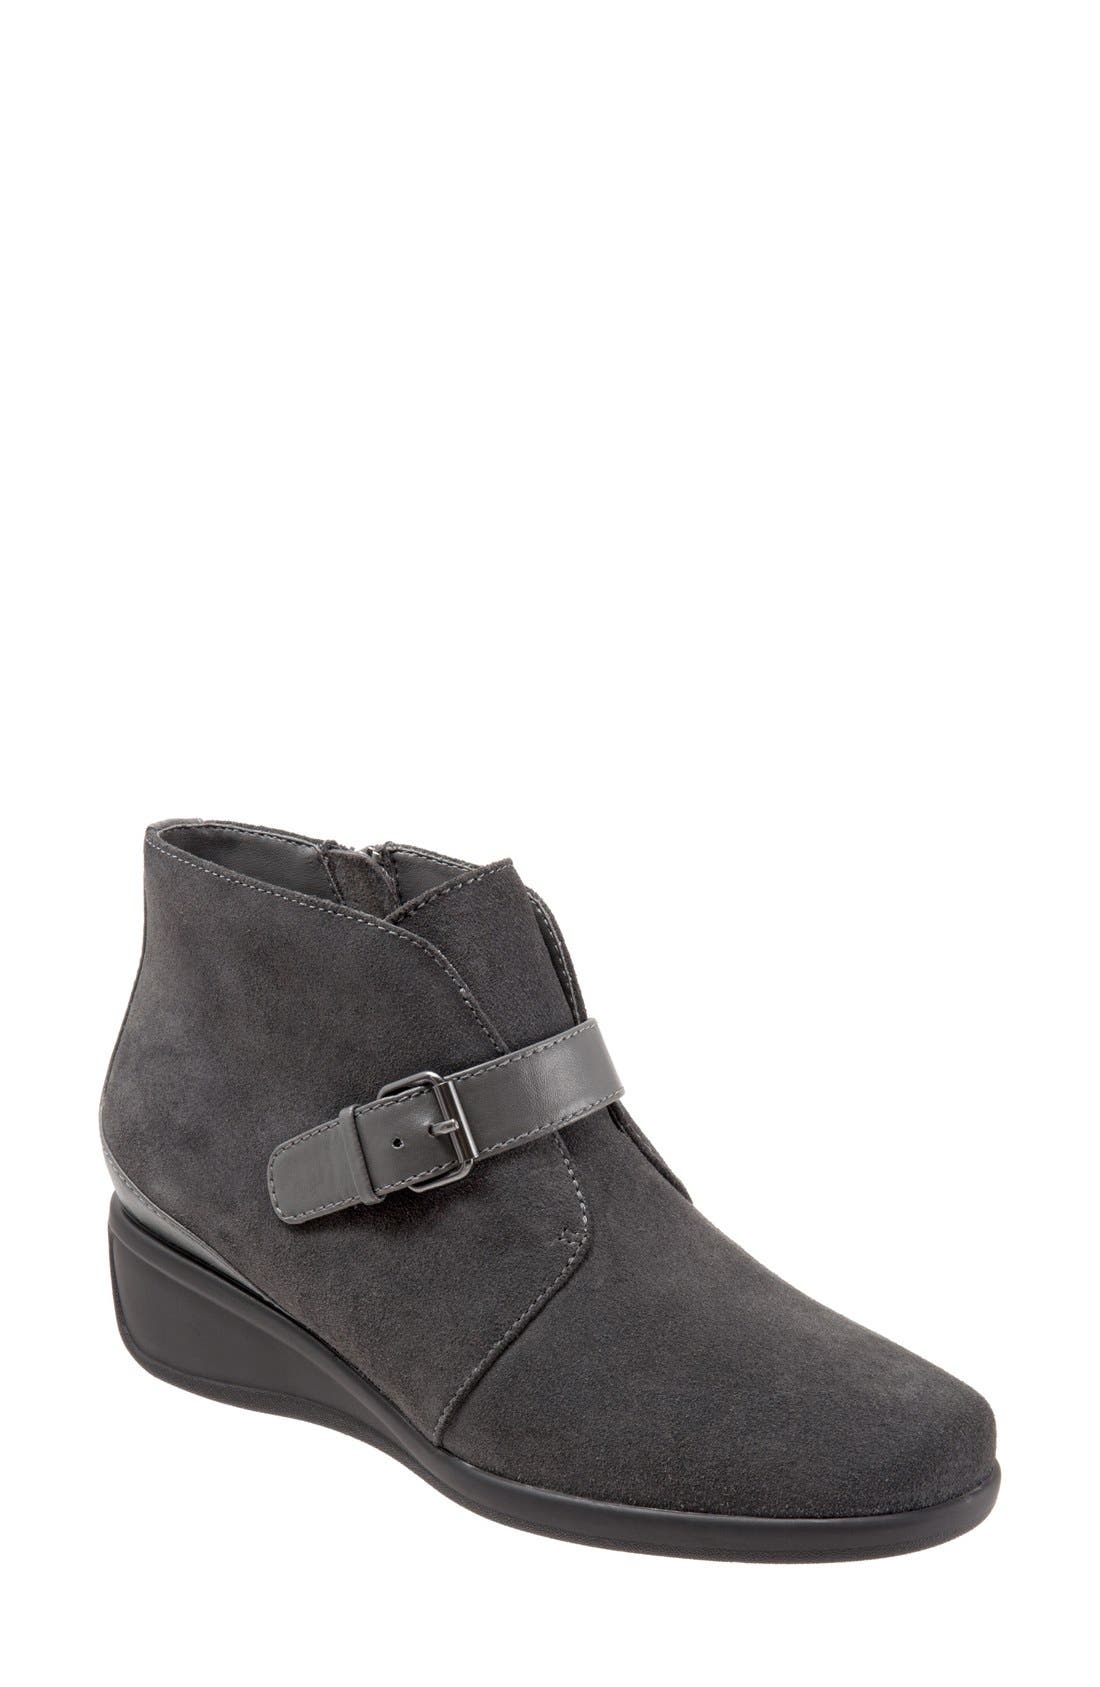 Trotters 'Mindy' Wedge Bootie (Women)